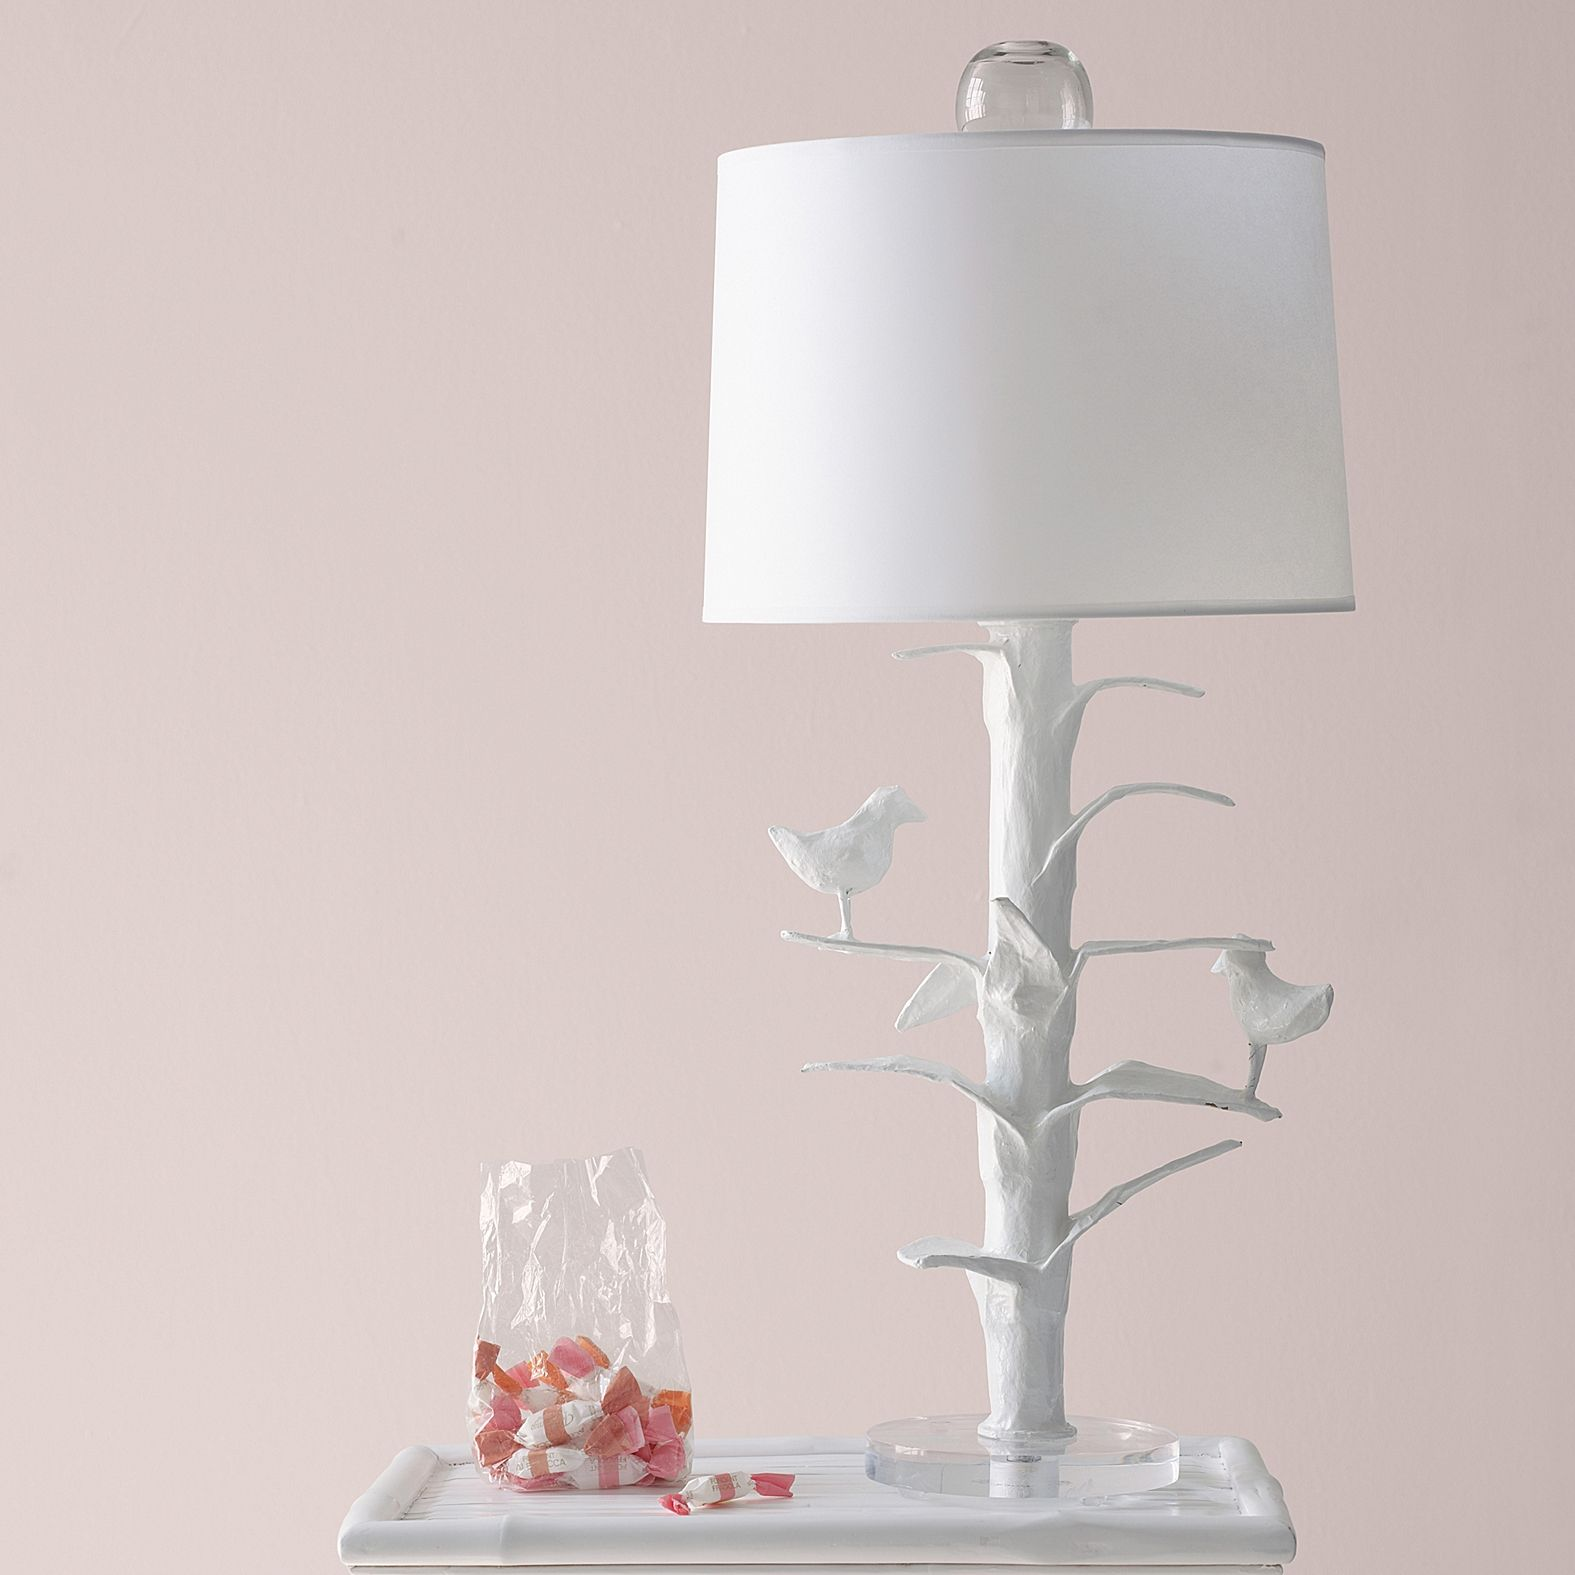 Designer Sarah Bird Lamp In White Papier Mache - Serena